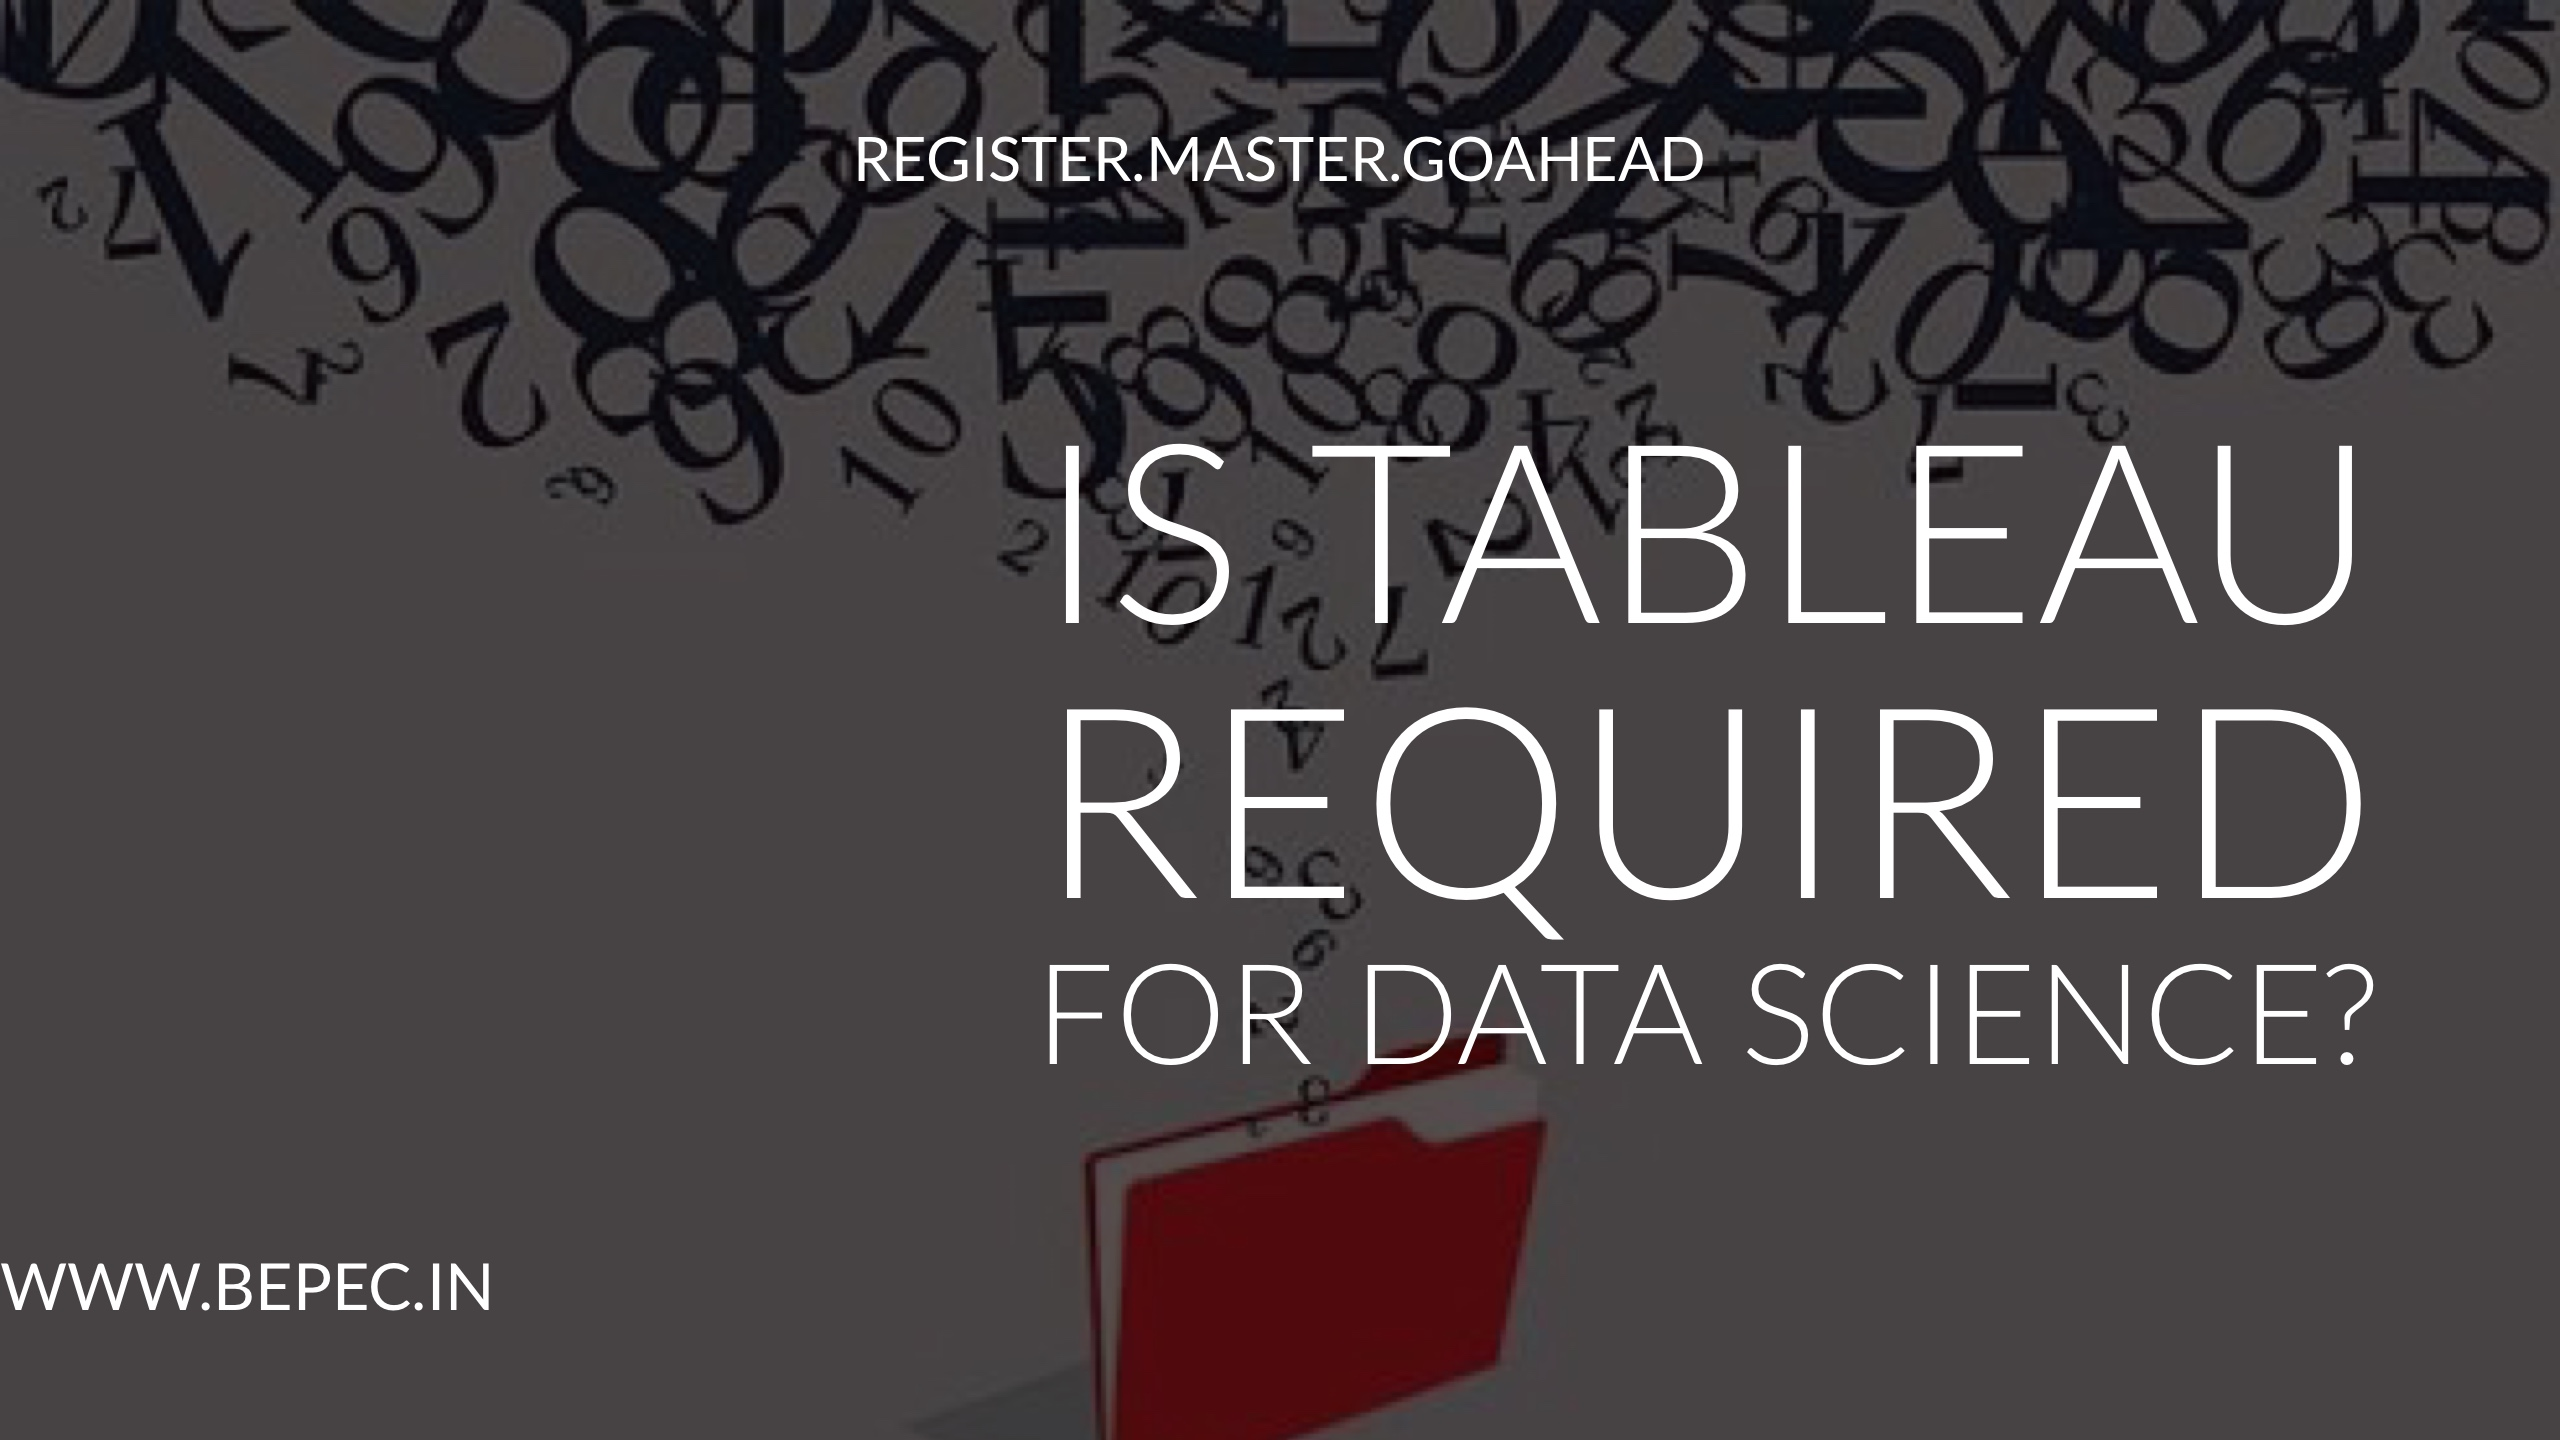 Is tableau required for data science bepec why data science is tableau required for data science bepec why data science bengaluru baditri Images